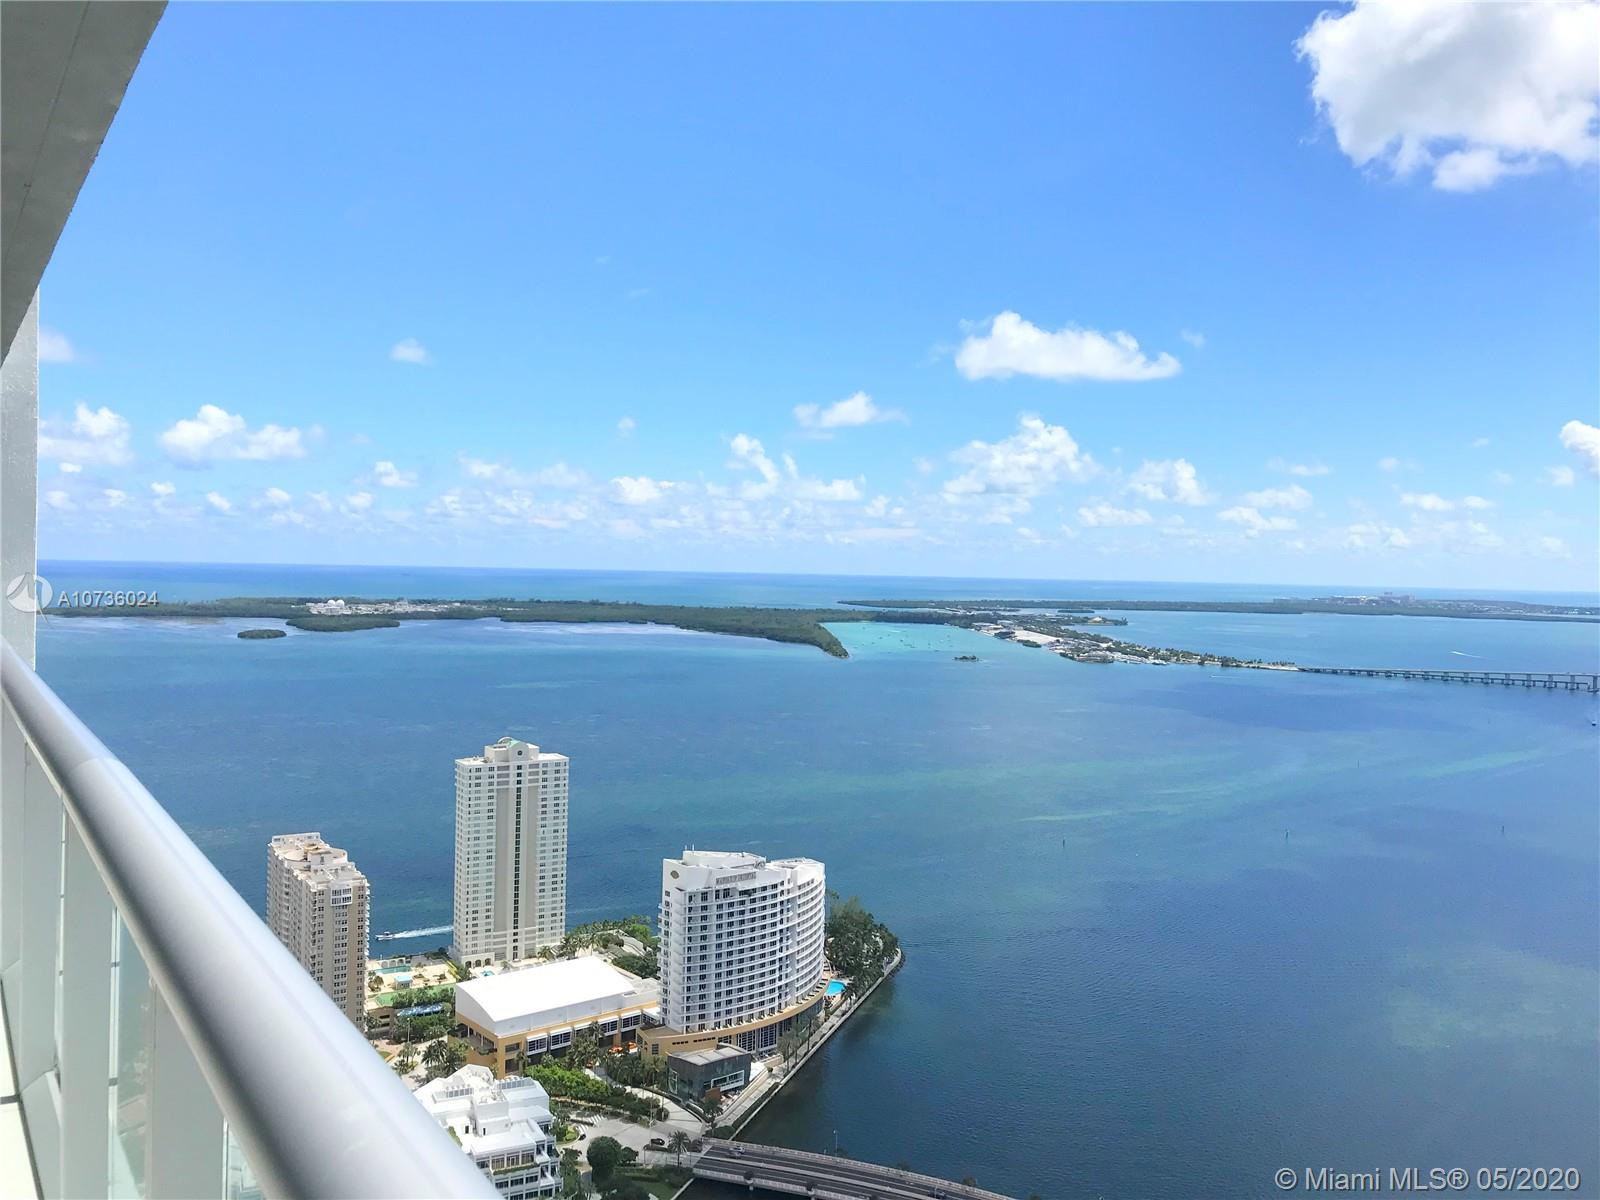 495 Brickell Ave # 5605, Miami, Florida 33131, 2 Bedrooms Bedrooms, ,2 BathroomsBathrooms,Residential,For Sale,495 Brickell Ave # 5605,A10736024